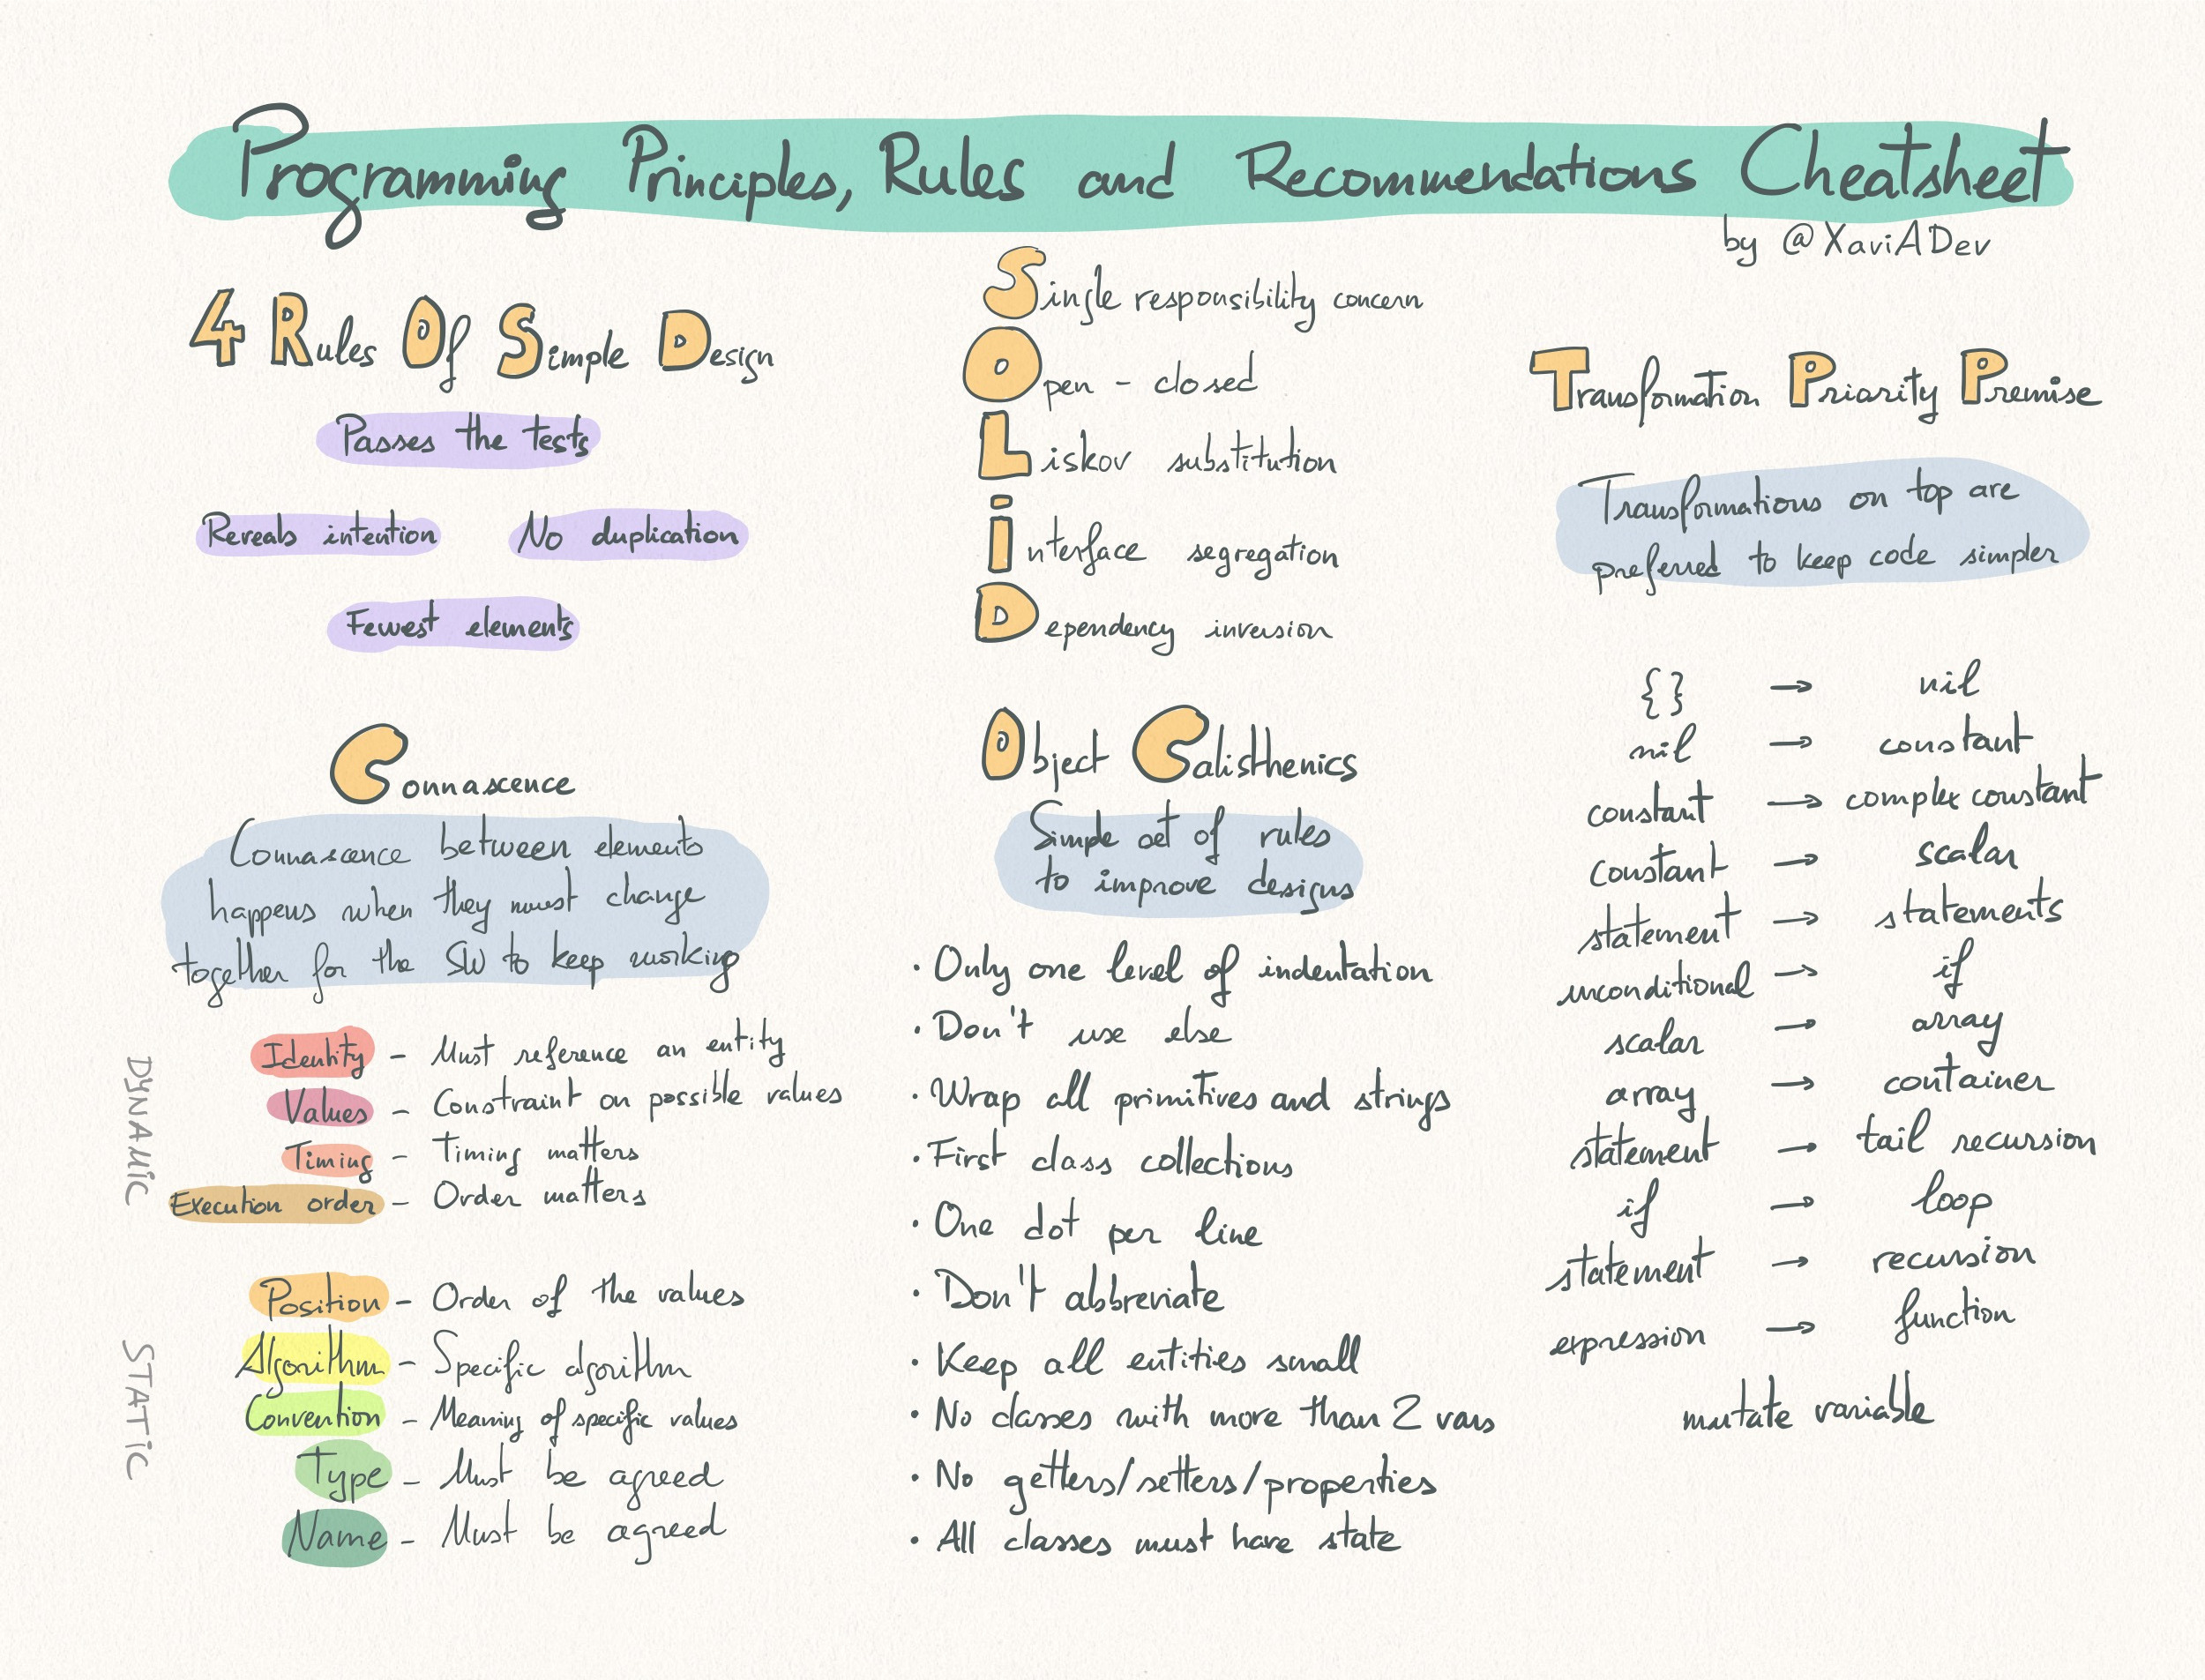 Programming Principles, Rules and Recommendations Cheatsheet